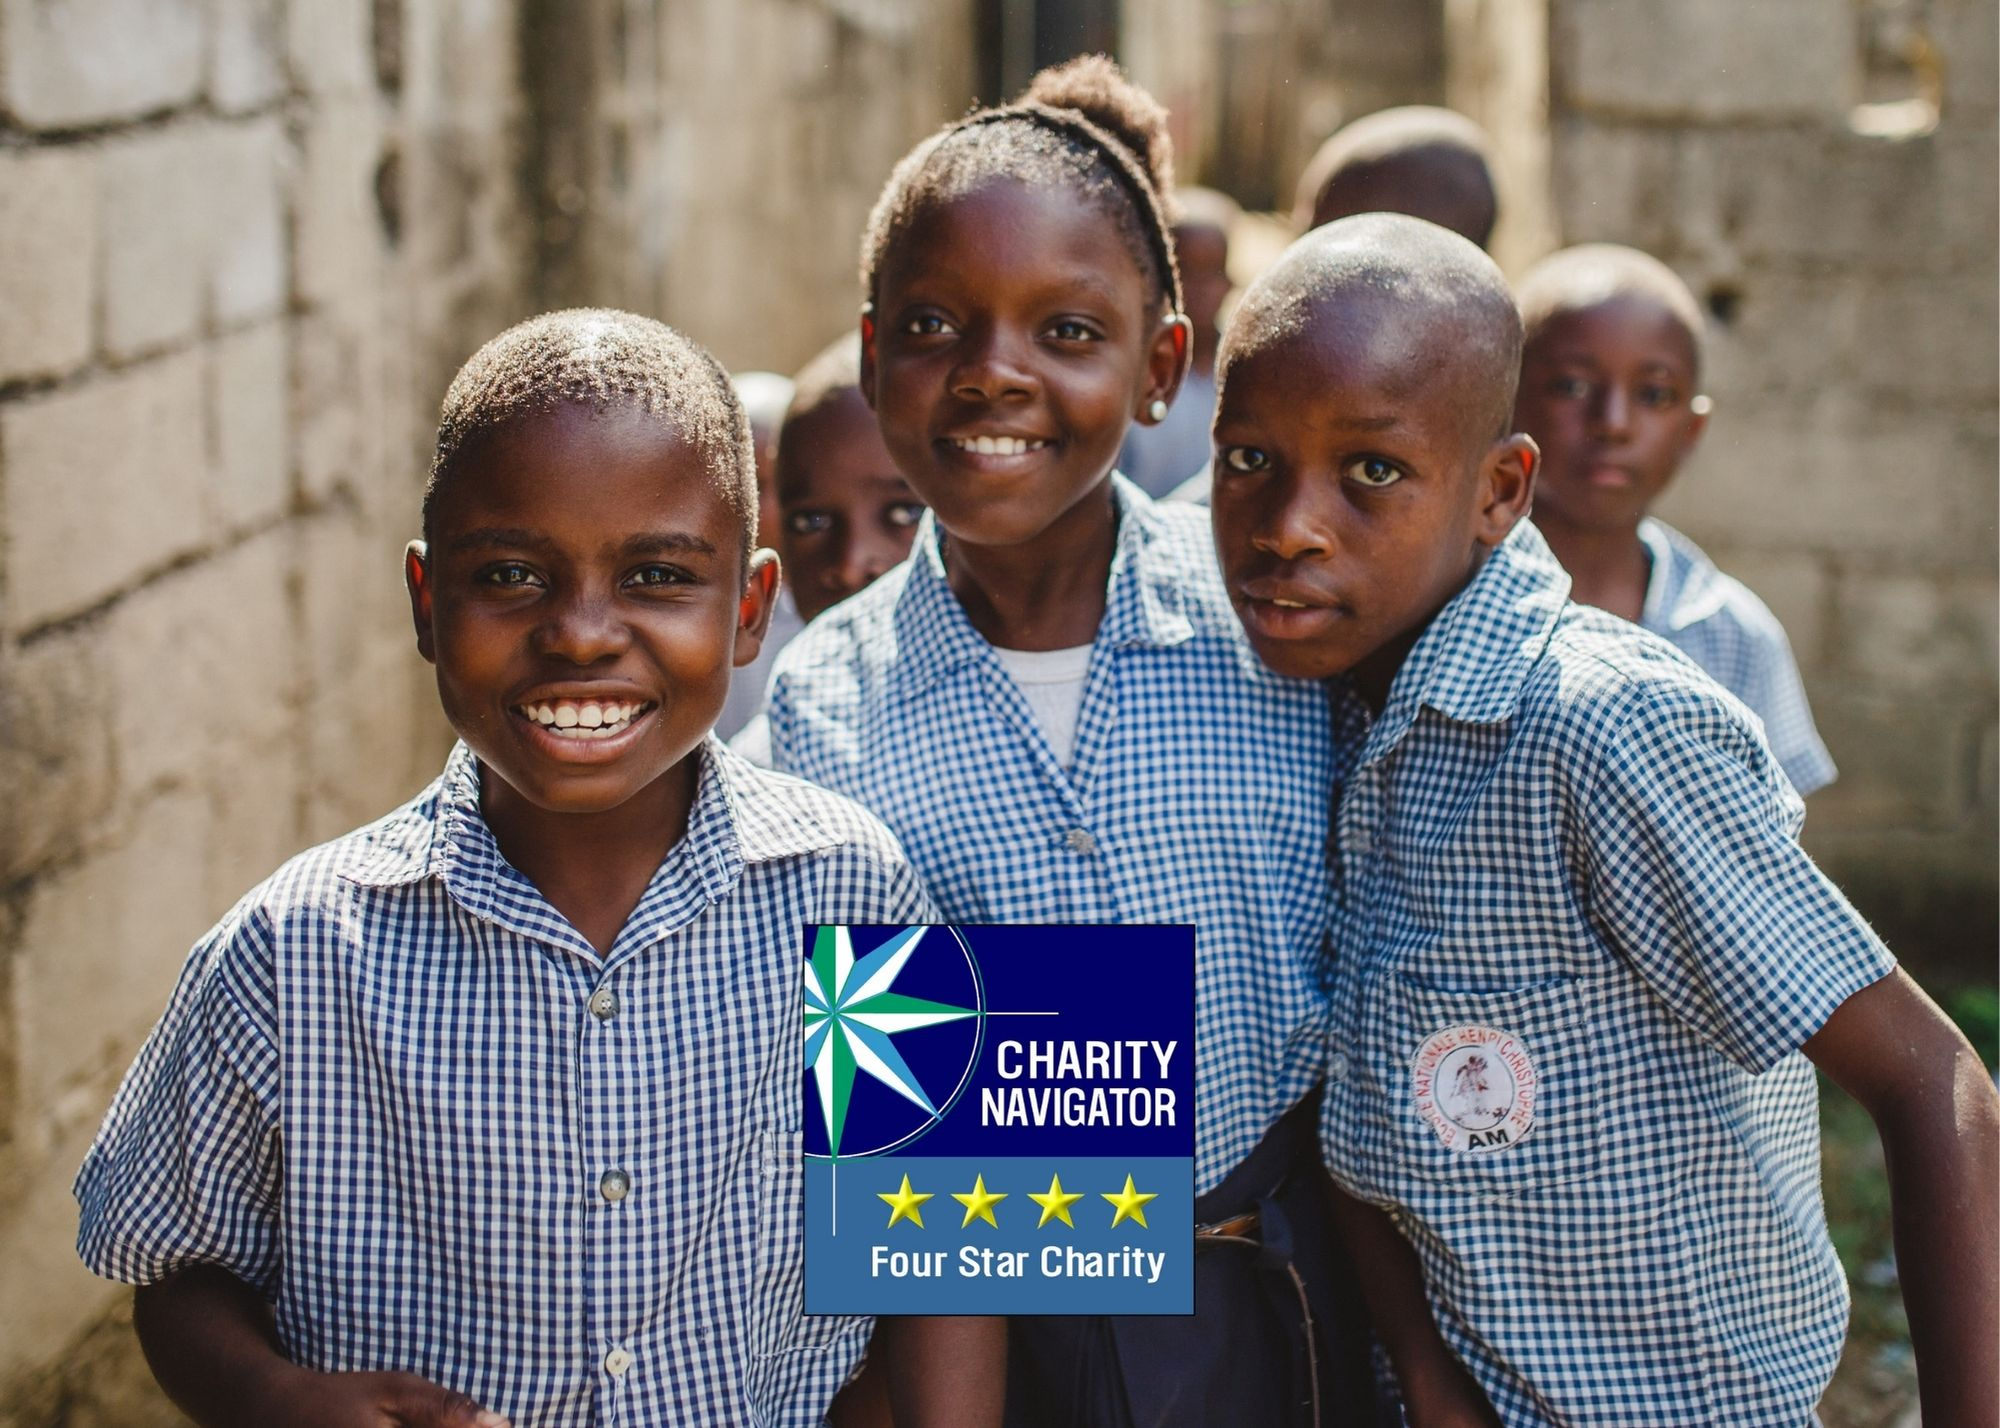 MFK Earns Another 4-Star Rating from Charity Navigator